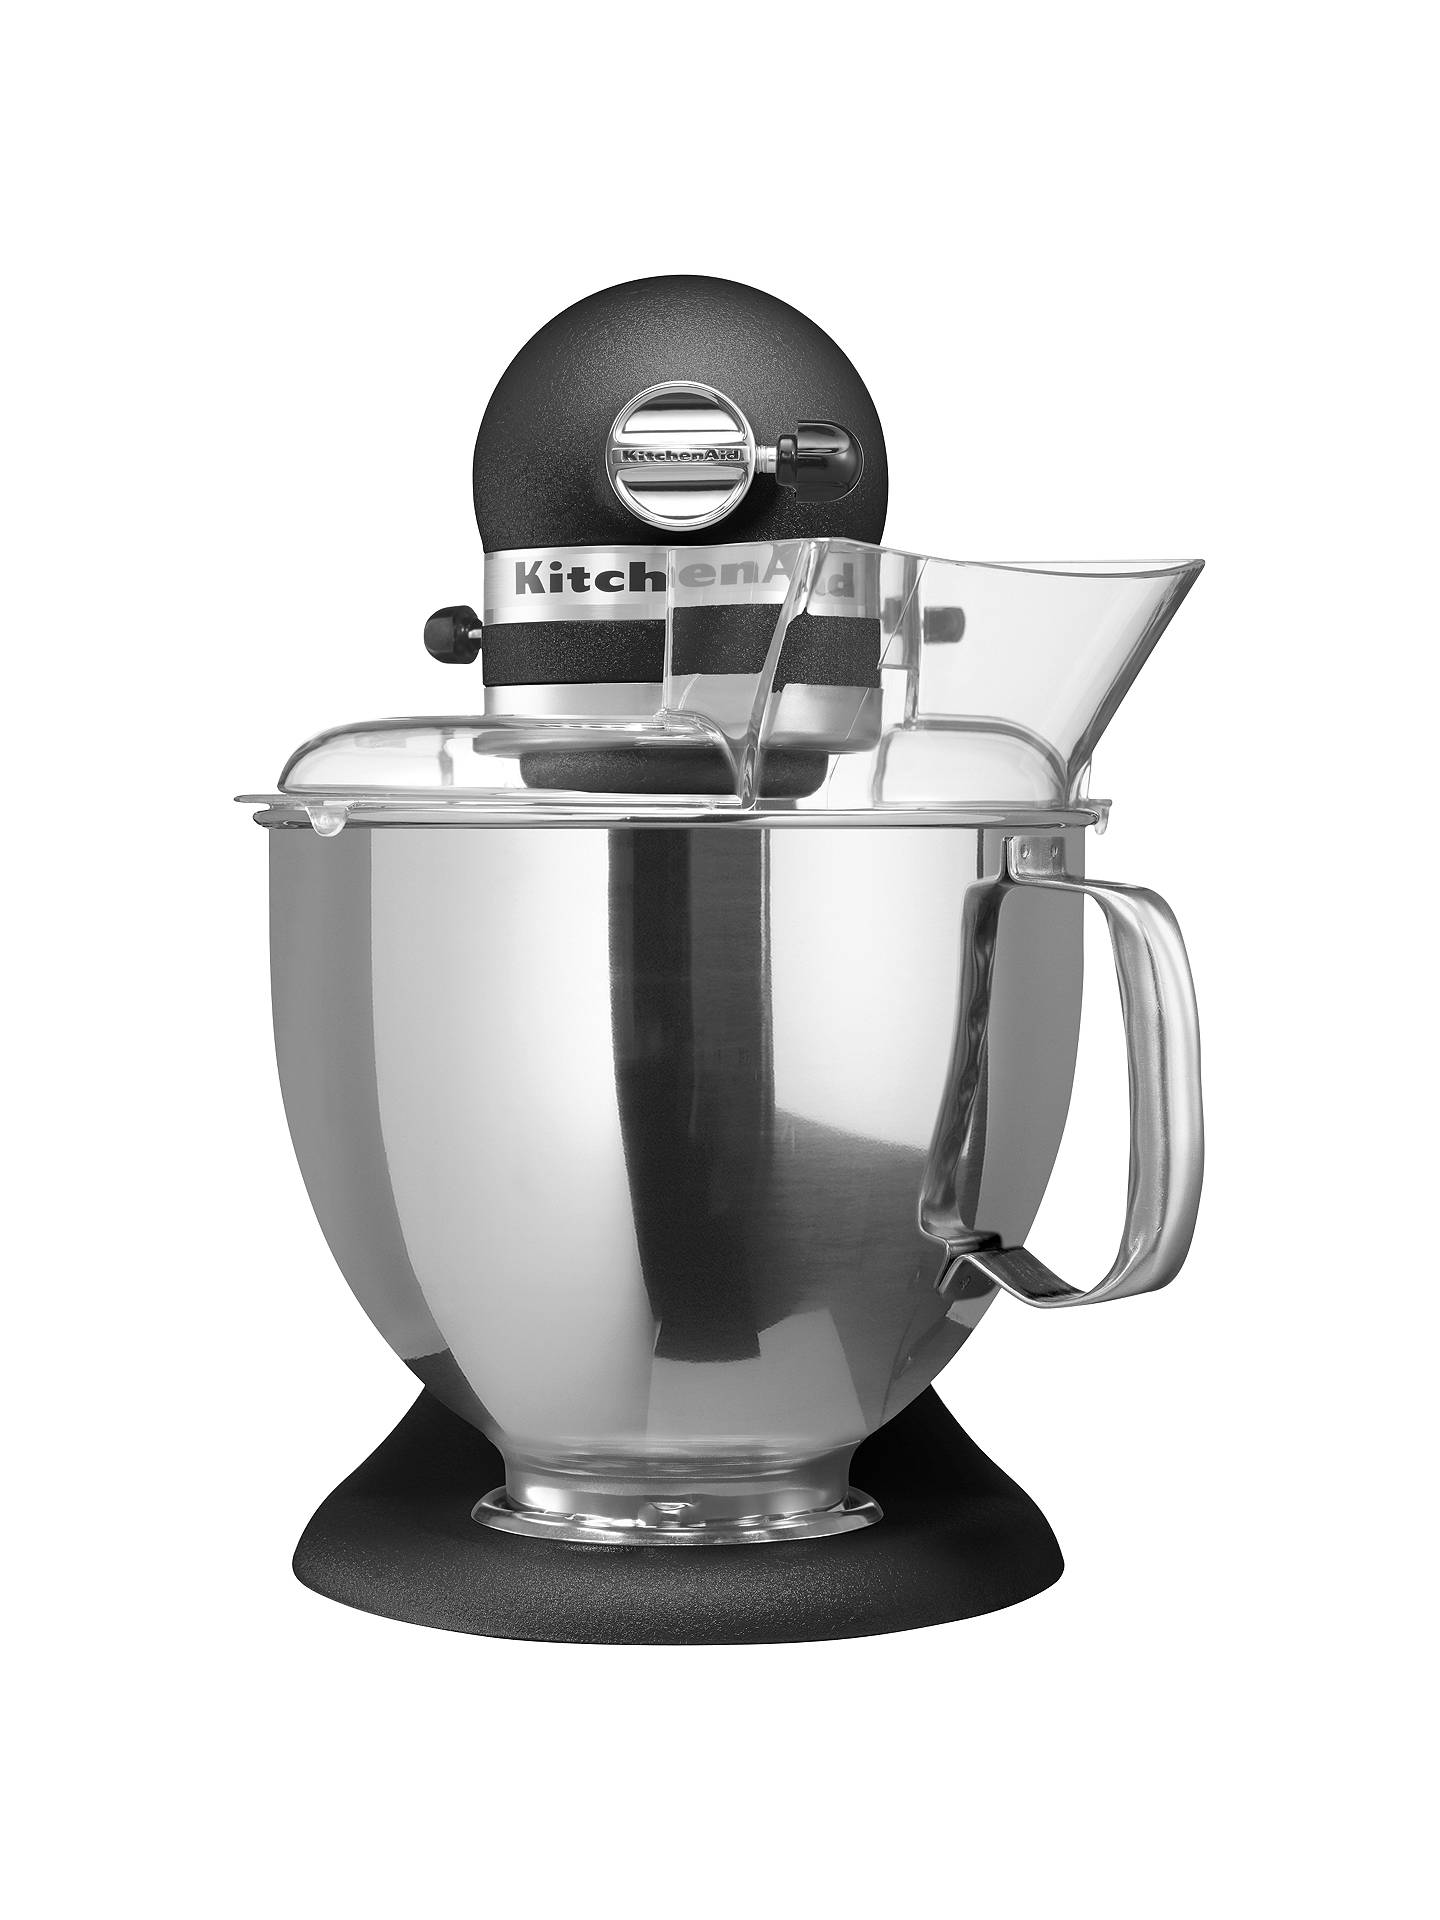 Buy KitchenAid Artisan 4.8L Stand Mixer, Cast Iron Online at johnlewis.com